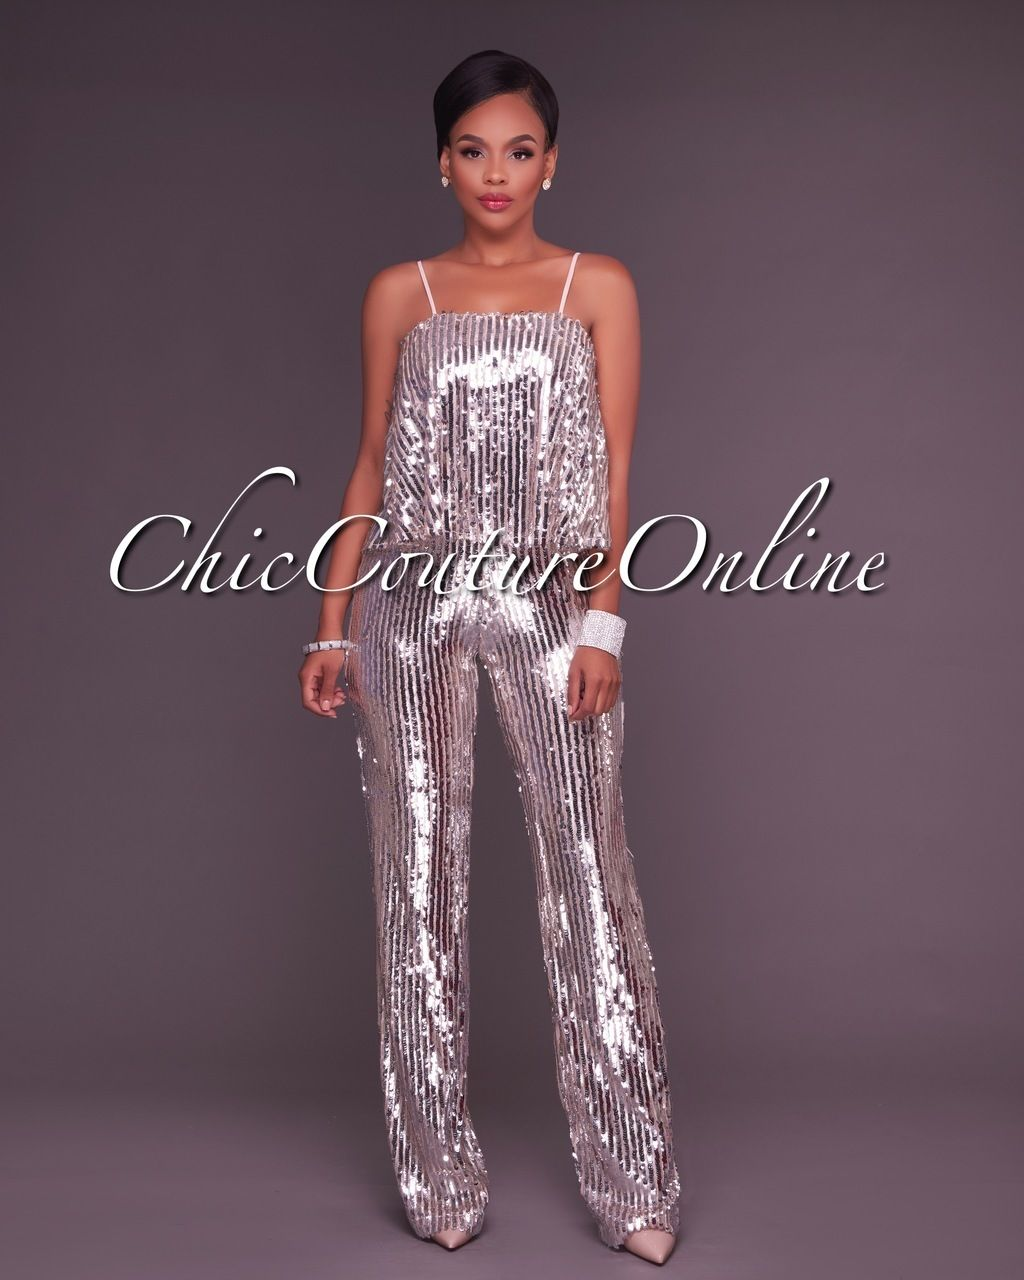 1441b598d52d1 Pin by Chic Couture Online on Clothing ~ Chic Couture Online ...